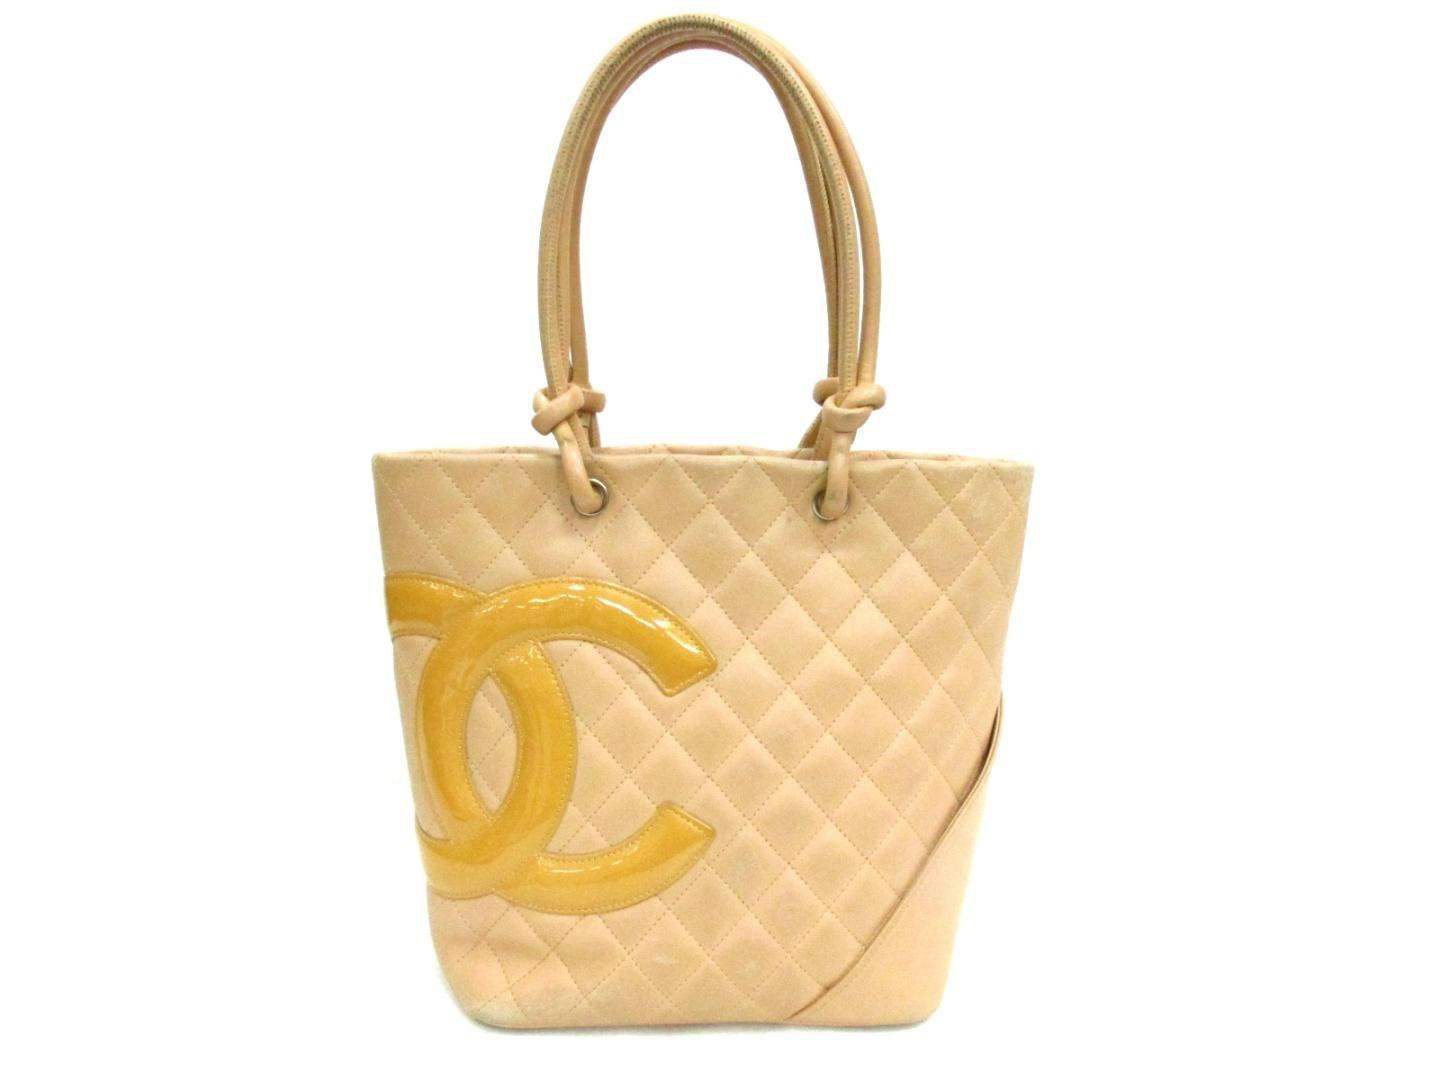 bff05dab1cac Lyst - Chanel Auth Cambon Line Medium Tote Tote Bag A25167 in Natural